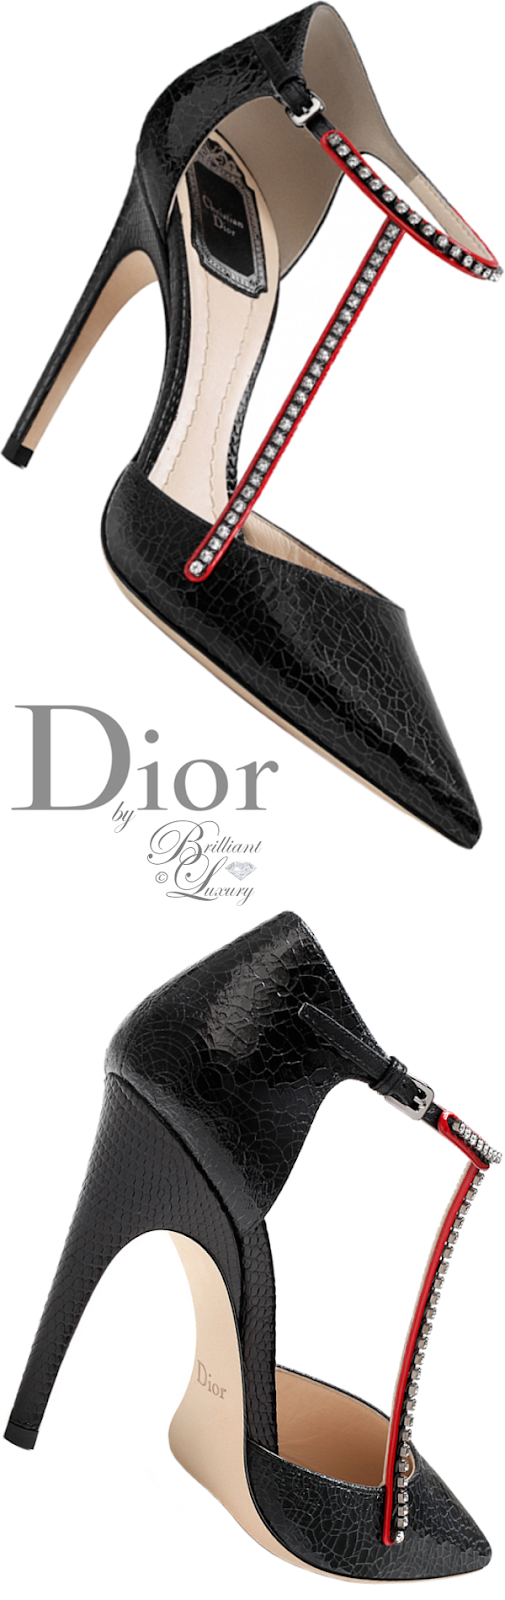 Brilliant Luxury ♦ Dior black crackled deerskin pump